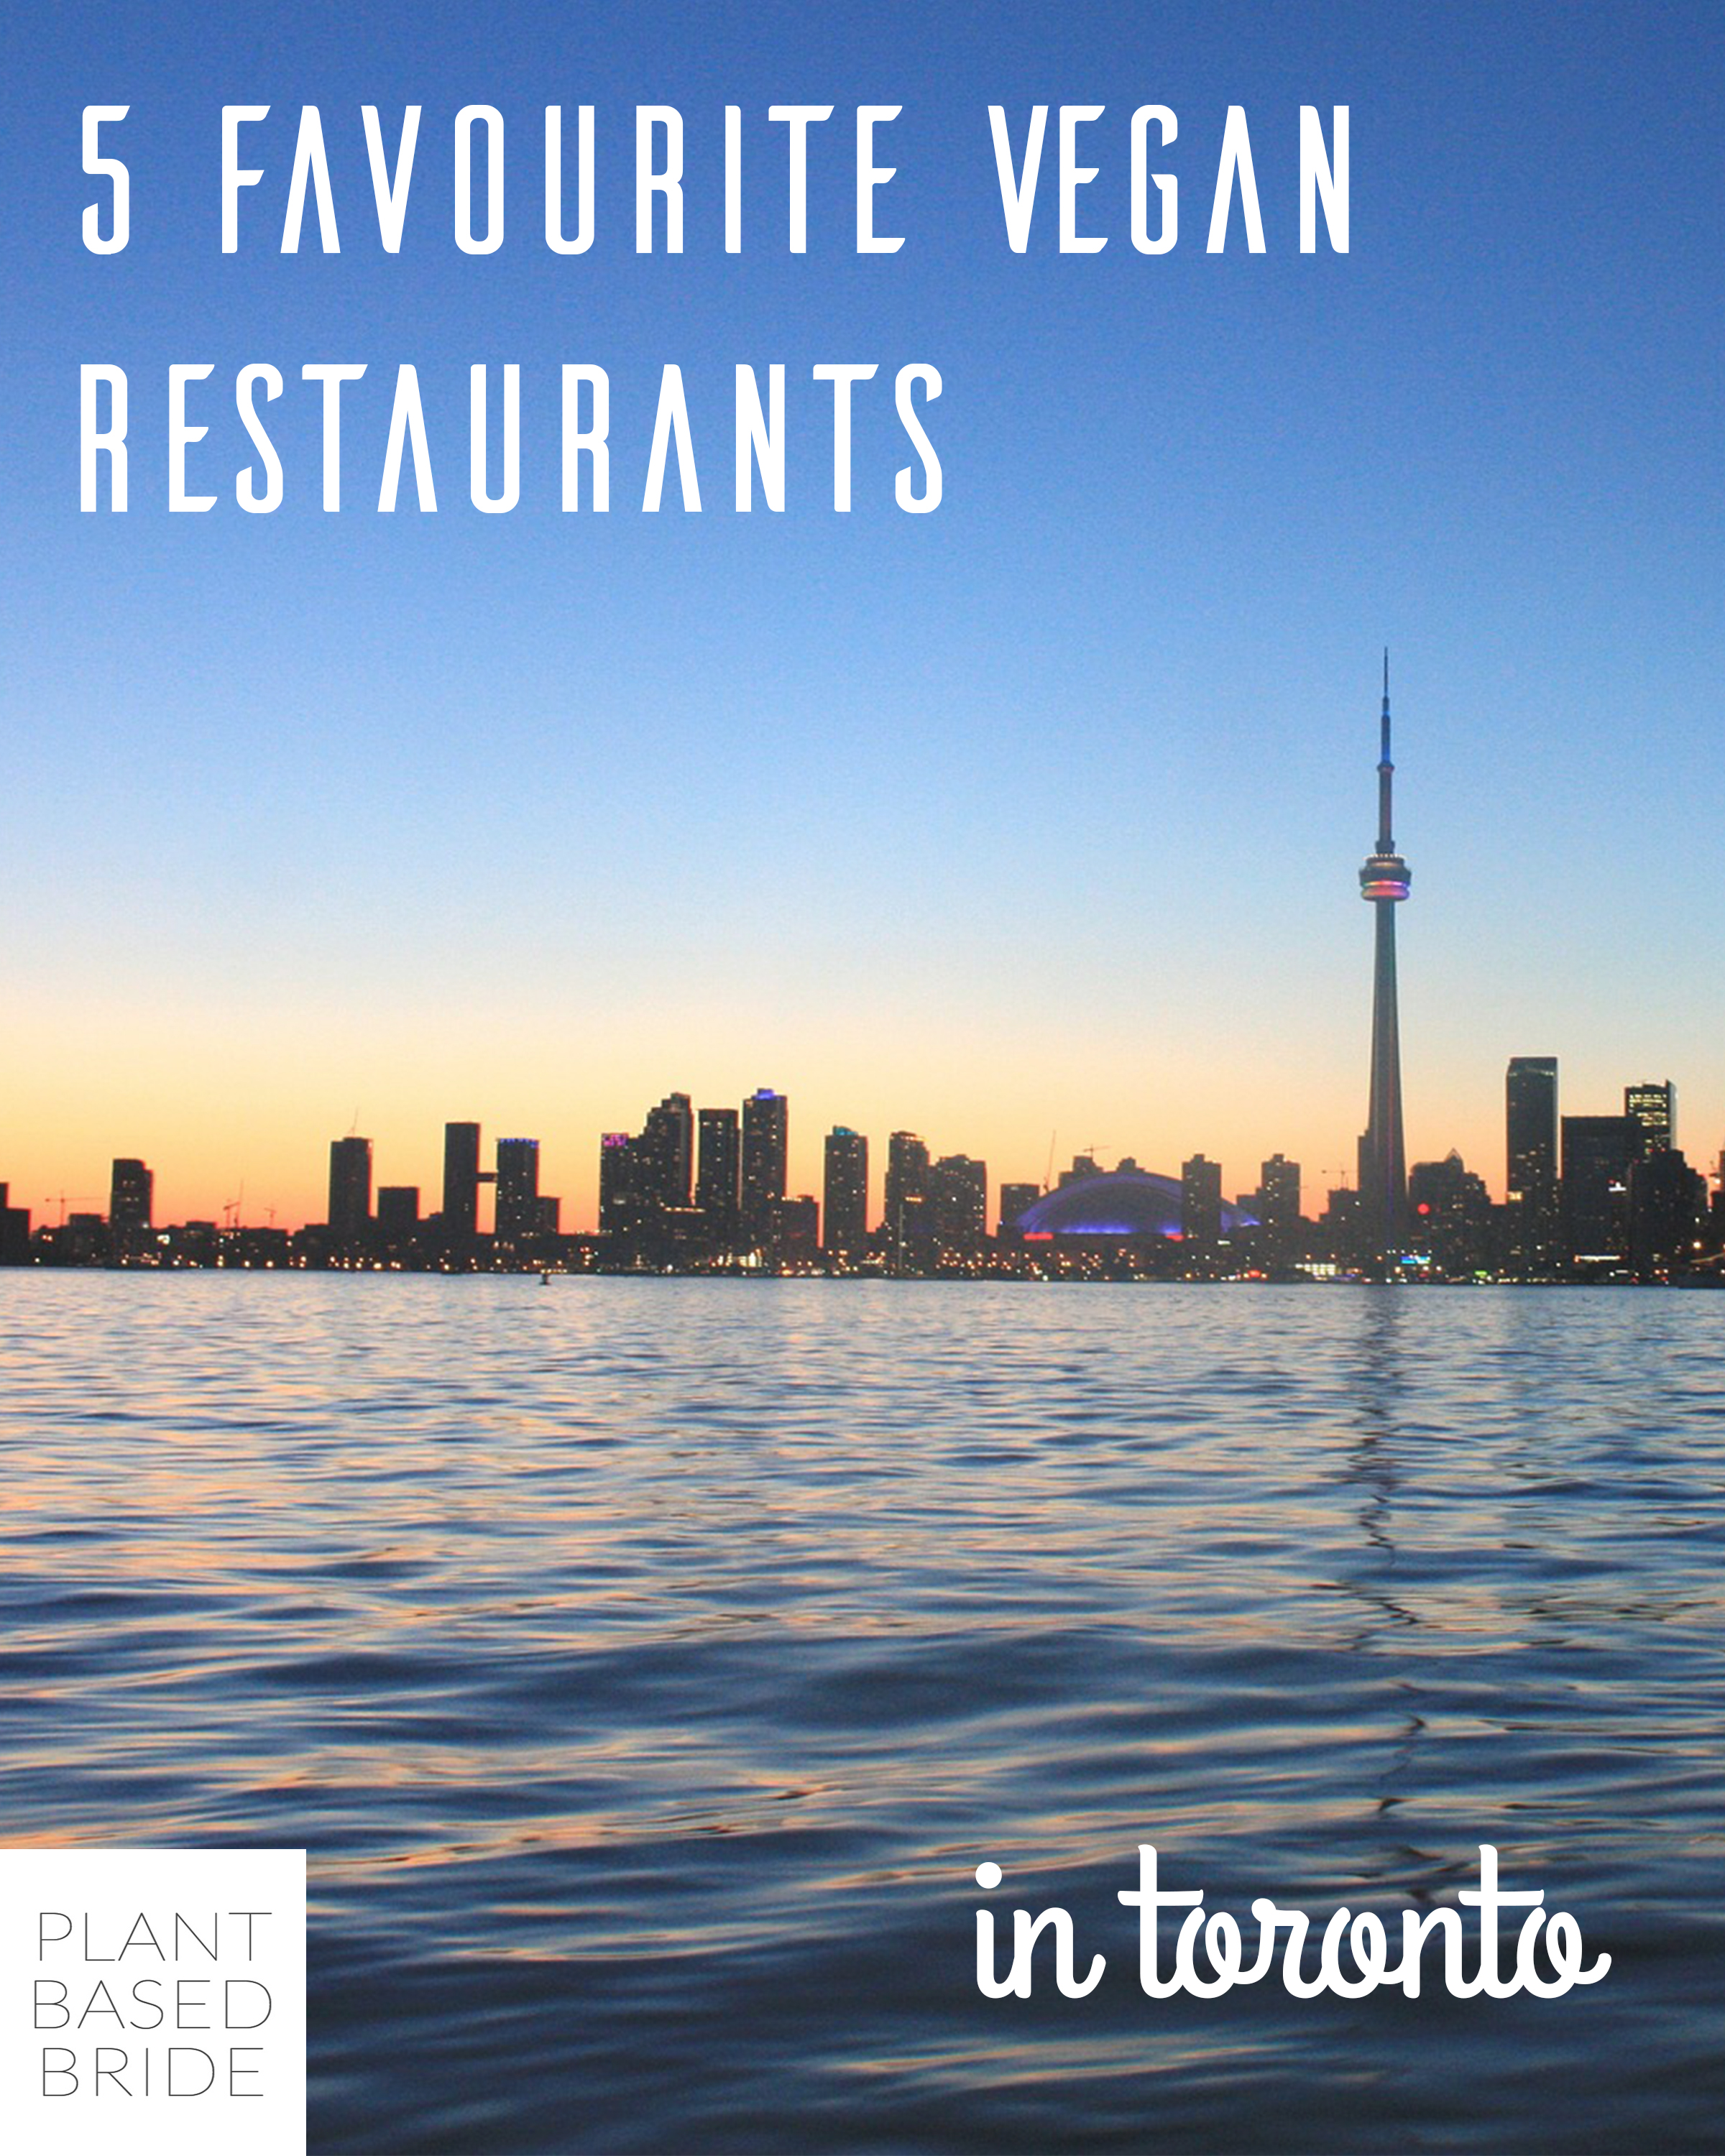 Pin now, read next time you're in Toronto and looking for great restaurants to check out!  Plant Based Bride